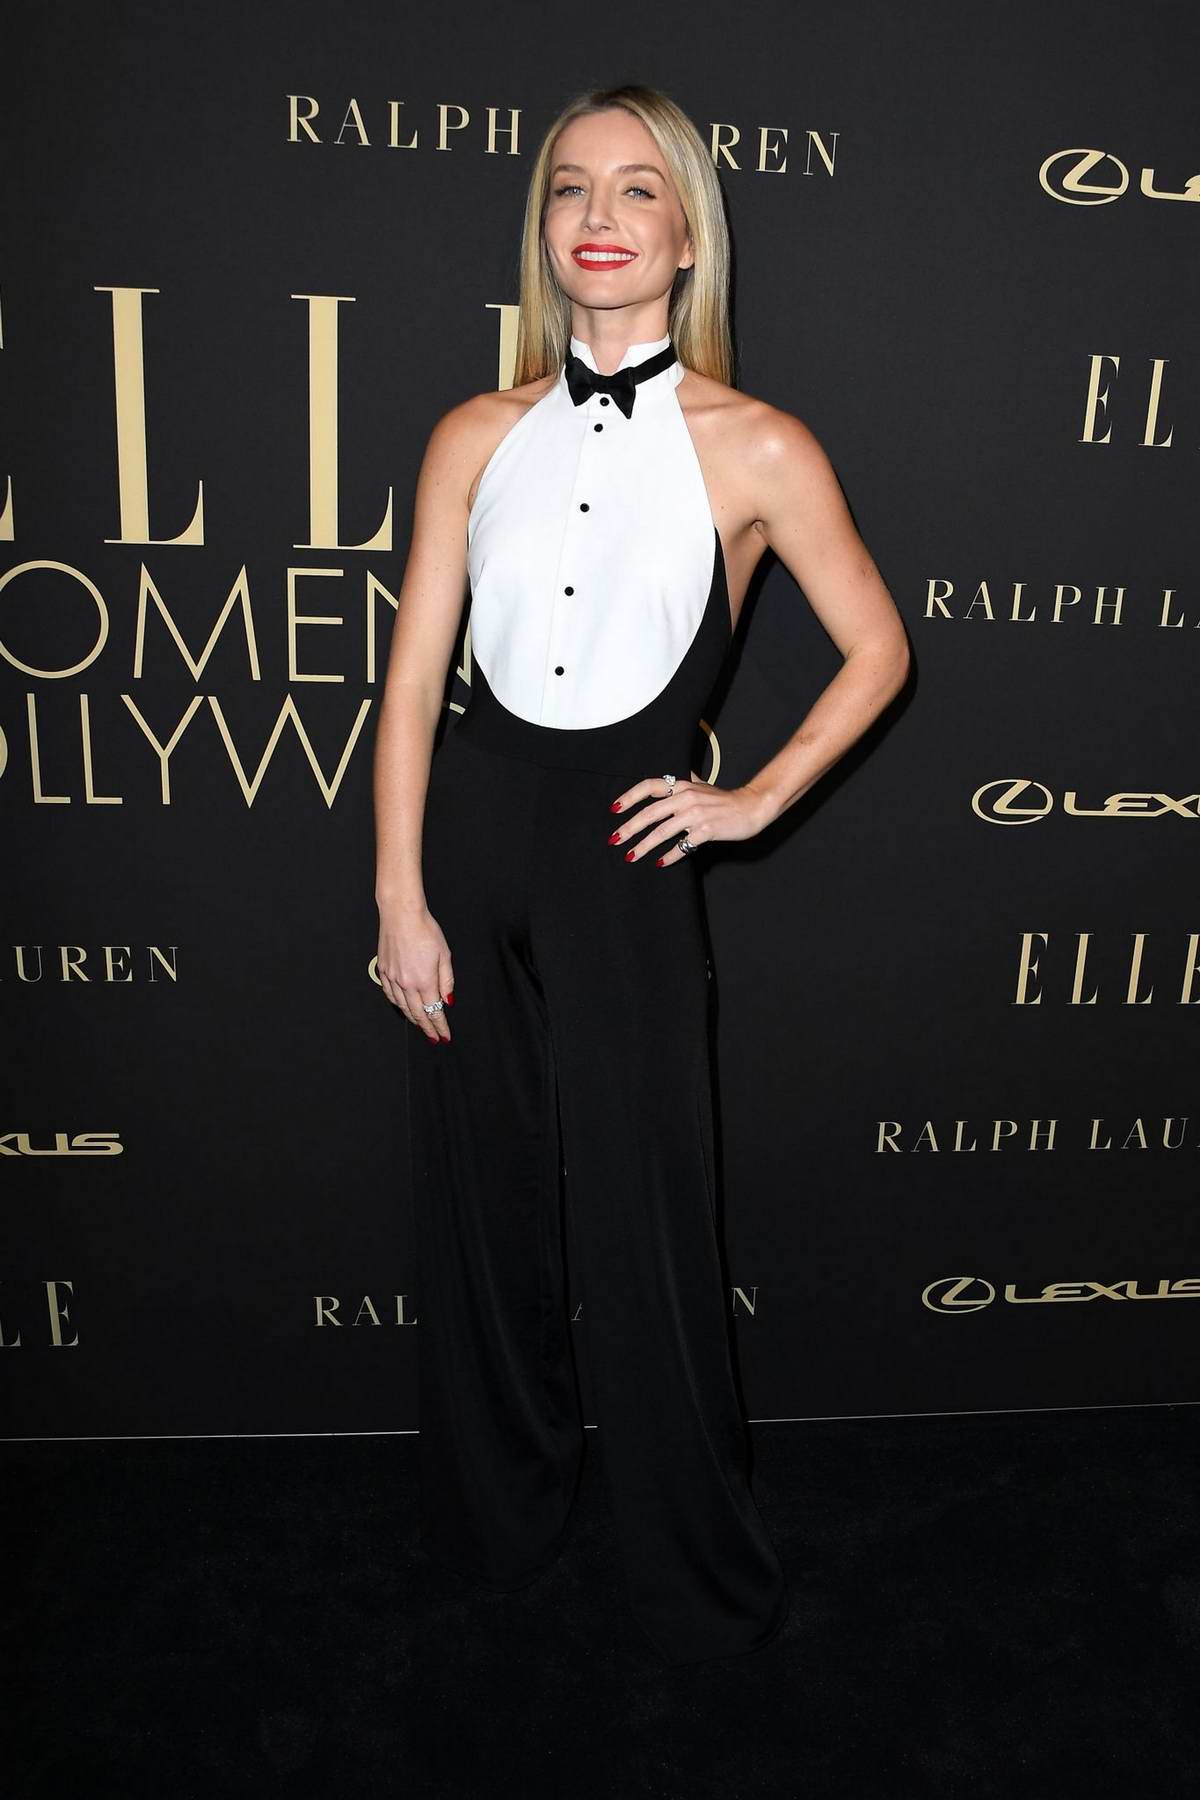 Annabelle Wallis attends ELLE's 26th Annual Women In Hollywood Celebration at The Four Seasons Hotel in Beverly Hills, California